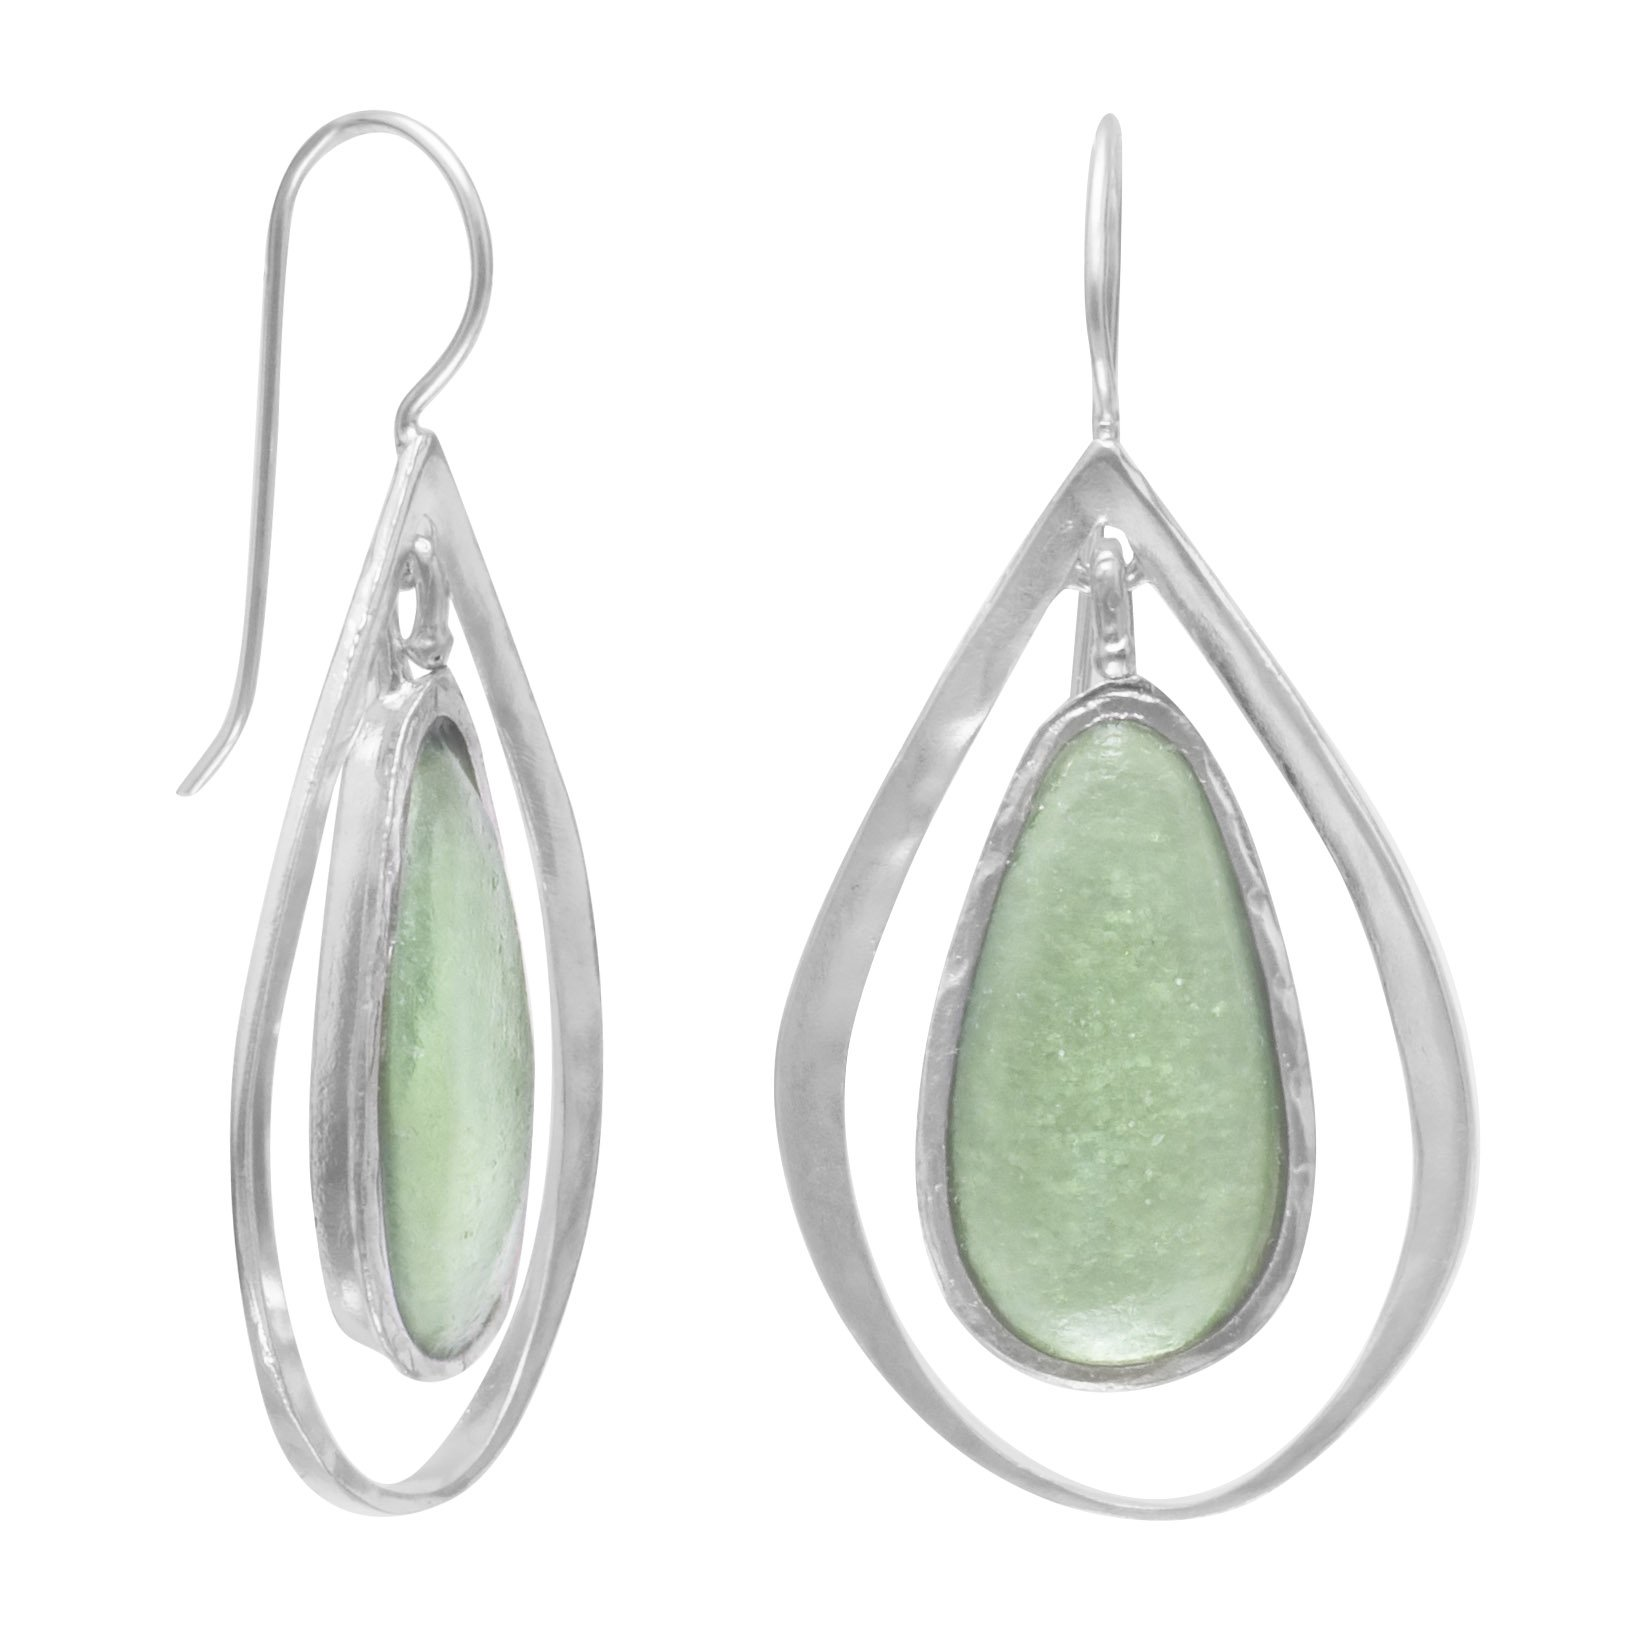 Ancient Roman Glass Sterling Silver Earrings on French Wire, 1-1/2 inch long by Silver Messages